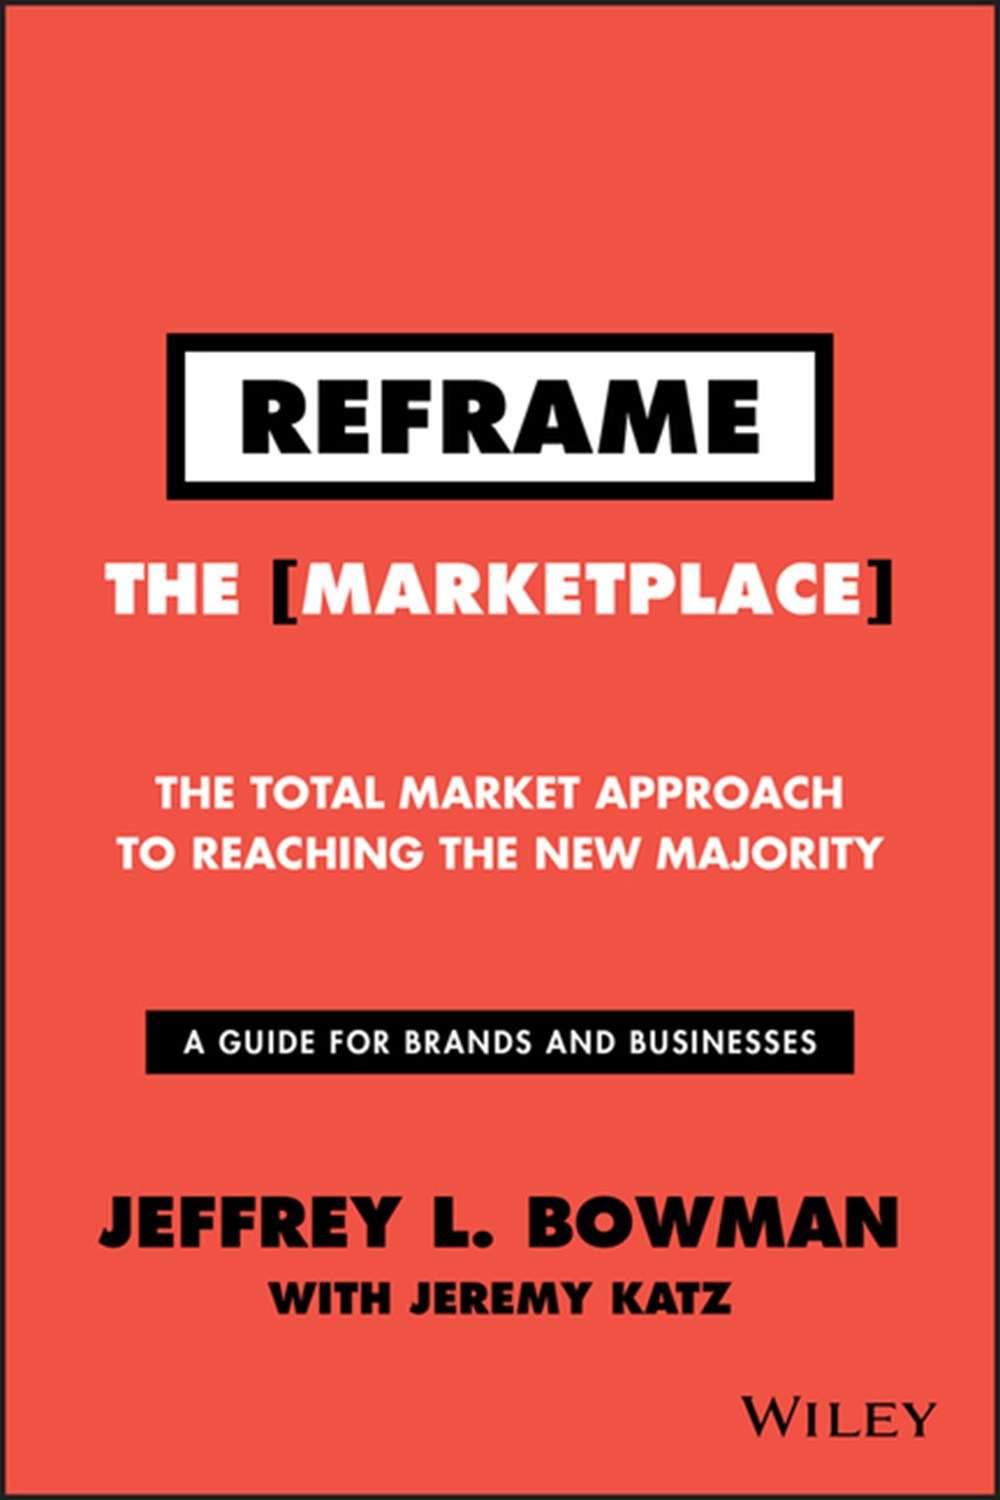 Reframe the Marketplace The Total Market Approach to Reaching the New Majority